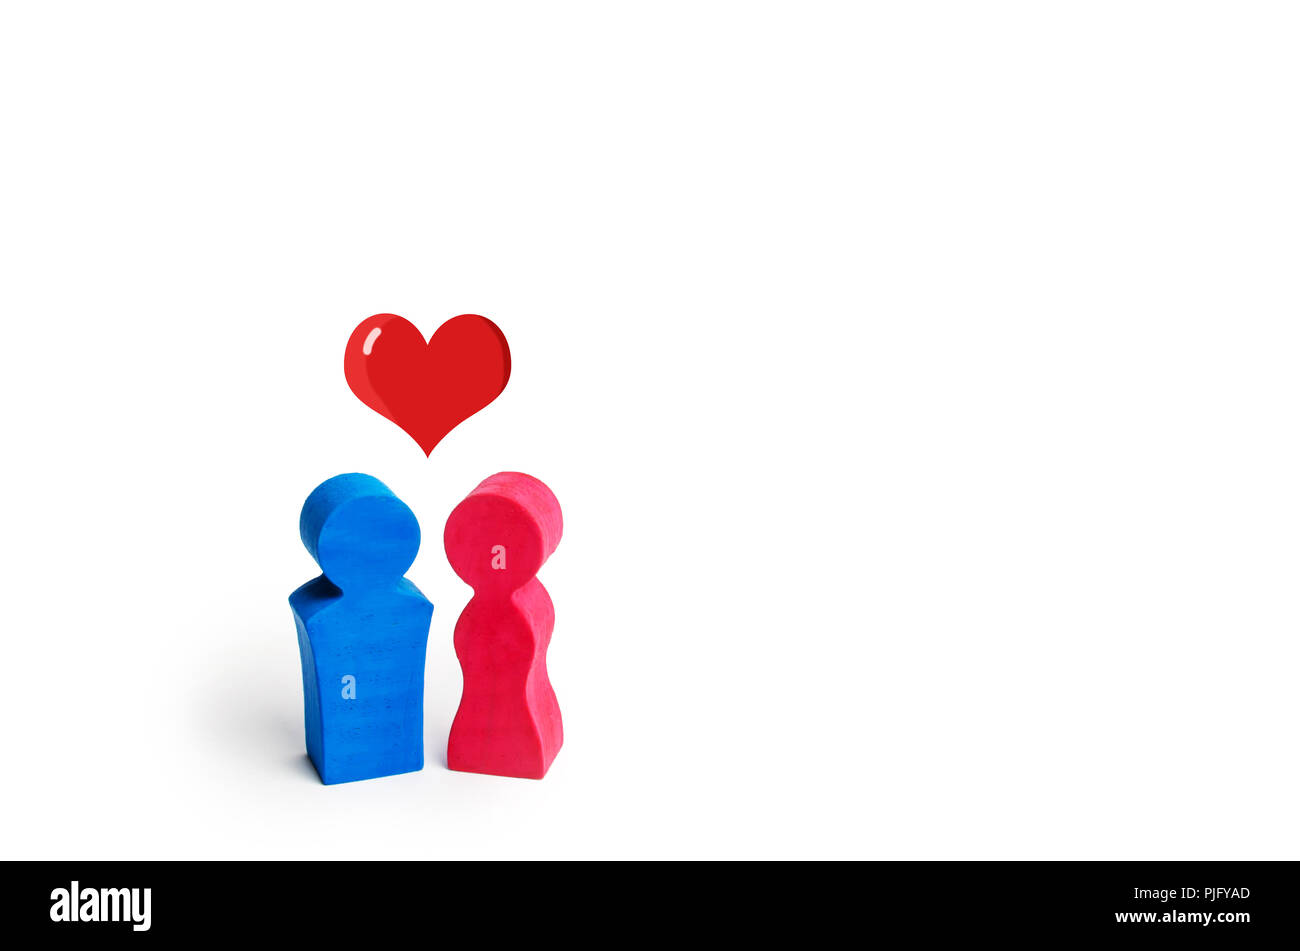 A man, a woman and a heart between them. The concept of love and sympathy between two people. Heterosexual relations. Conservative society. Human happ - Stock Image